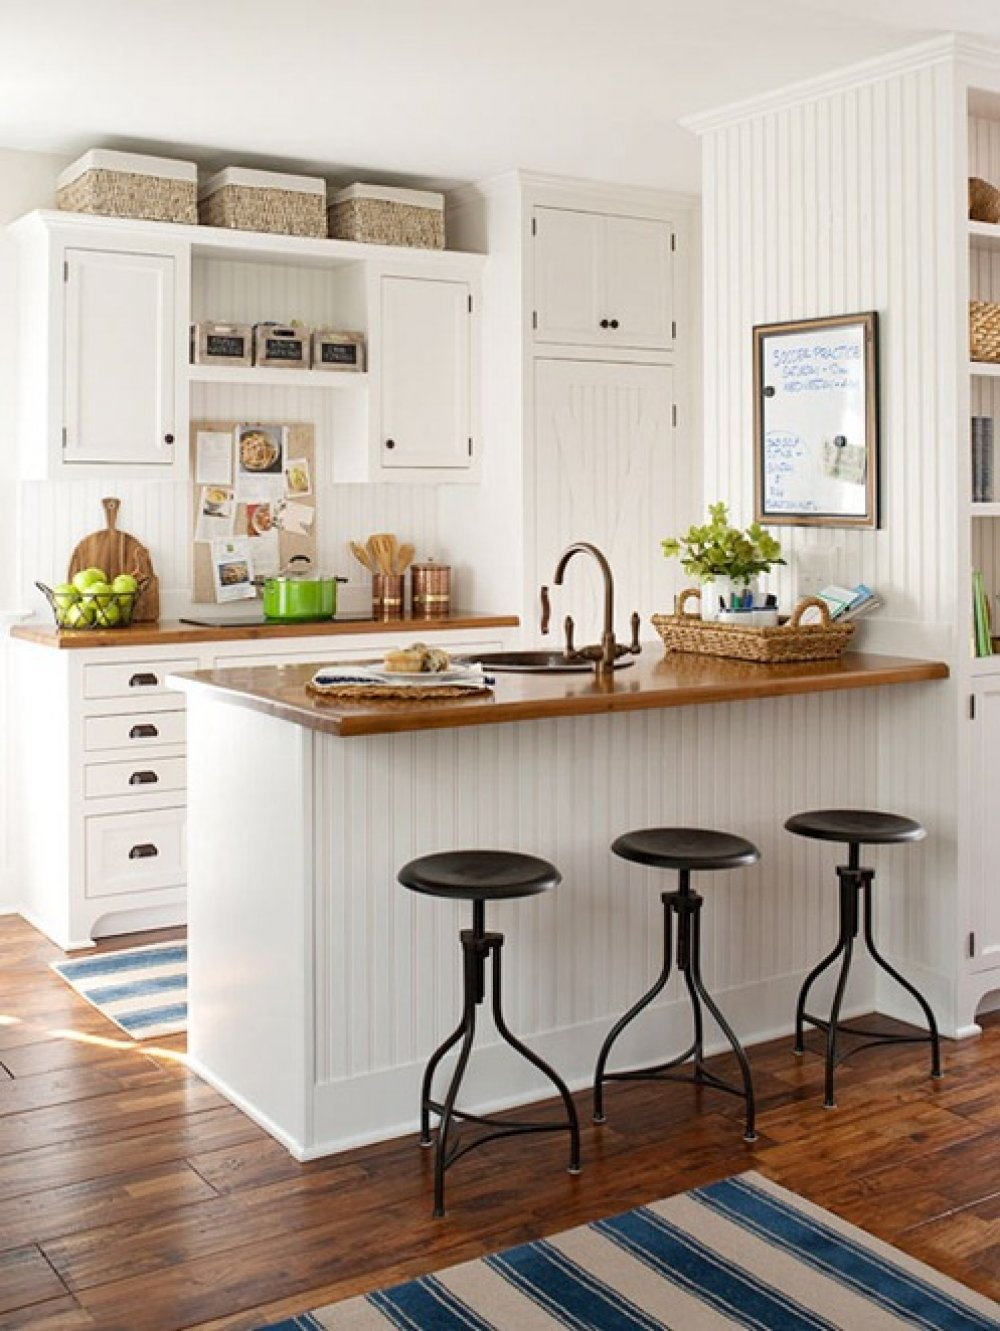 4 small kitchen cabinets 41 A Simple Design That Serves For Perfect Functionality